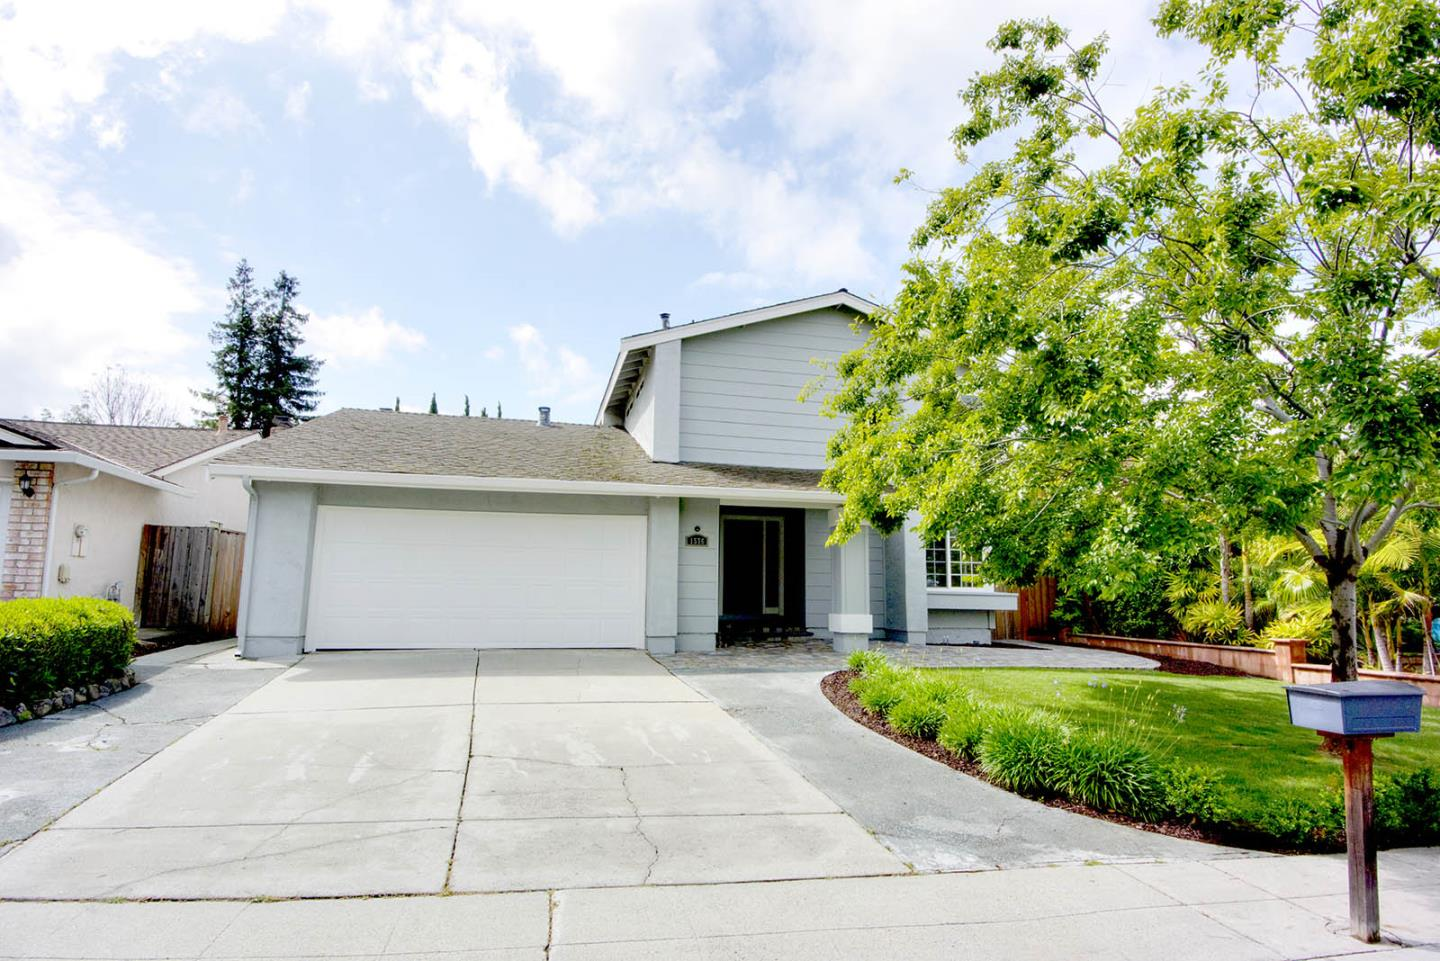 Detail Gallery Image 1 of 1 For 1576 Stemel Way, Milpitas, CA 95035 - 4 Beds | 2/1 Baths